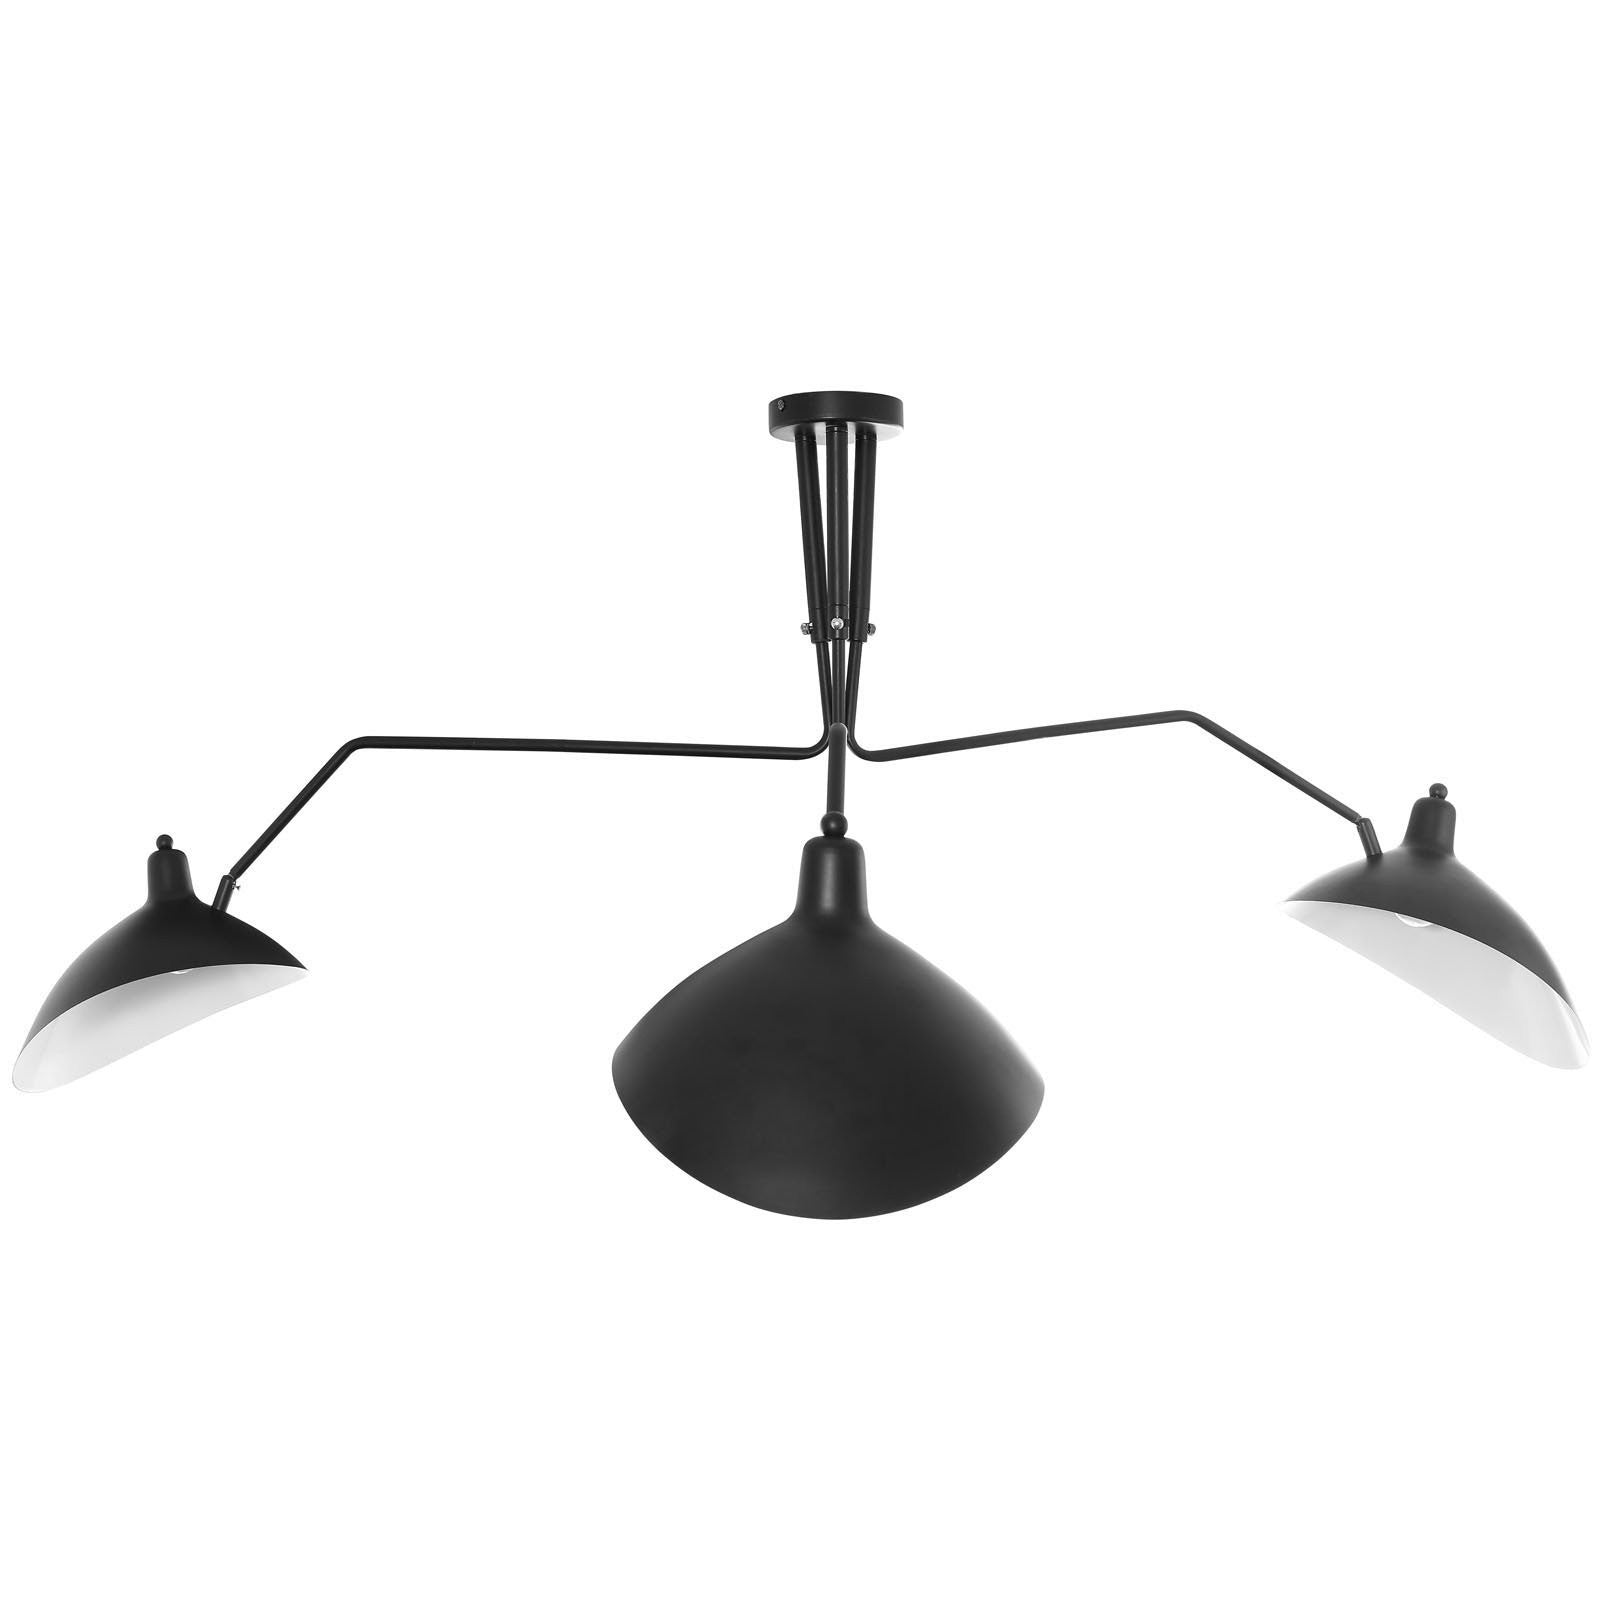 Serge mouille style three arm spider ceiling fixture emfurn serge mouille style three arm spider ceiling fixture arubaitofo Choice Image